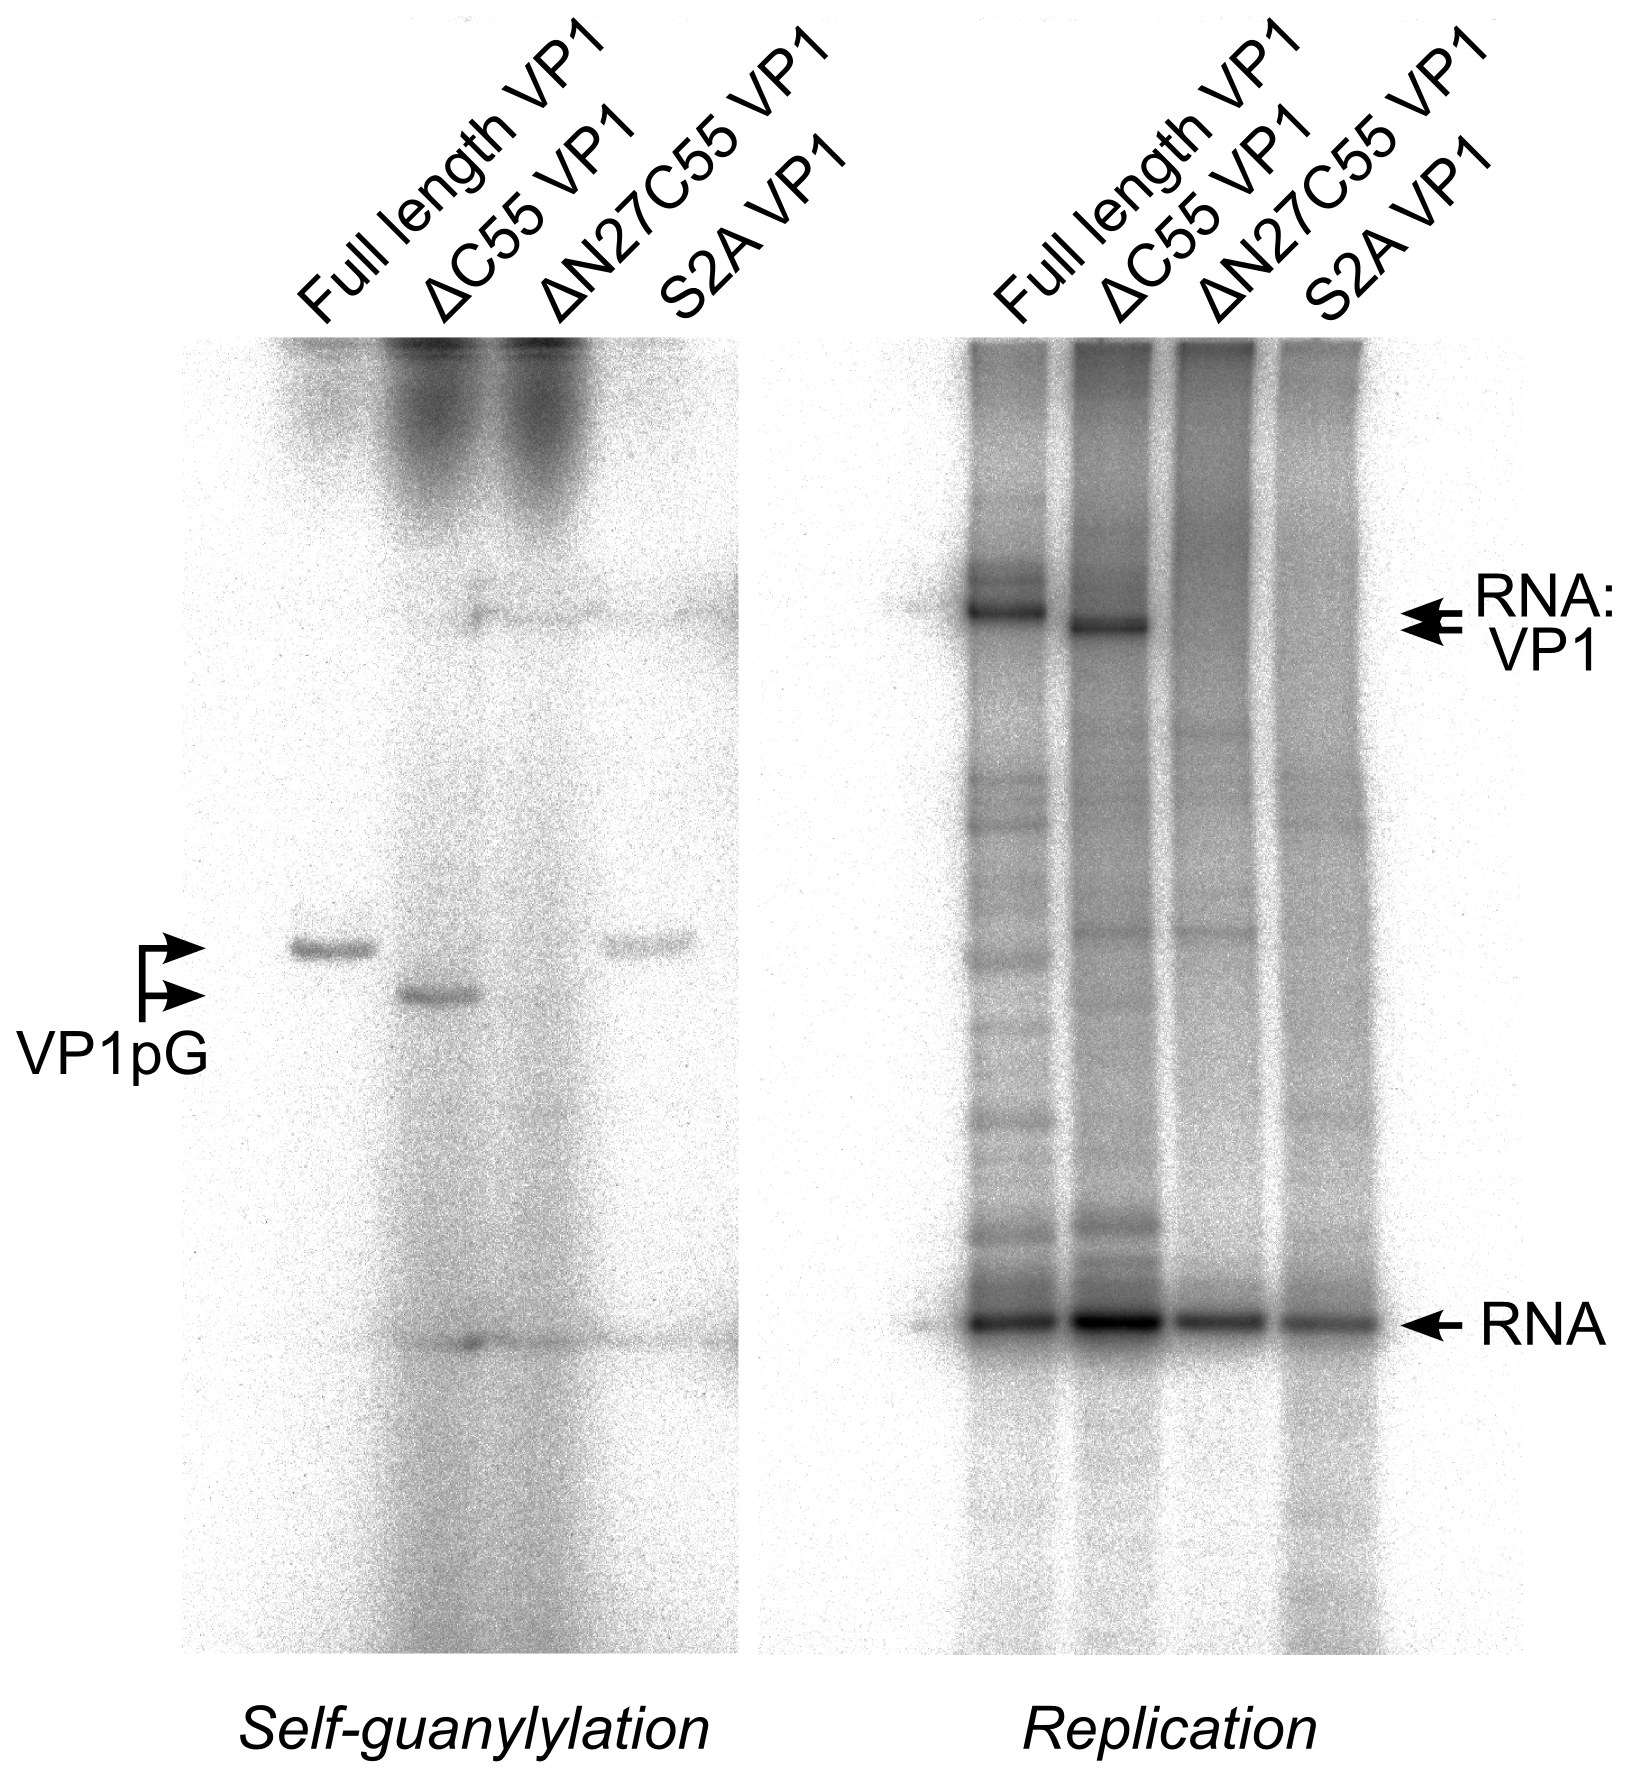 IPNV VP1 self-guanylylation and RNA∶polymerase complex formation.